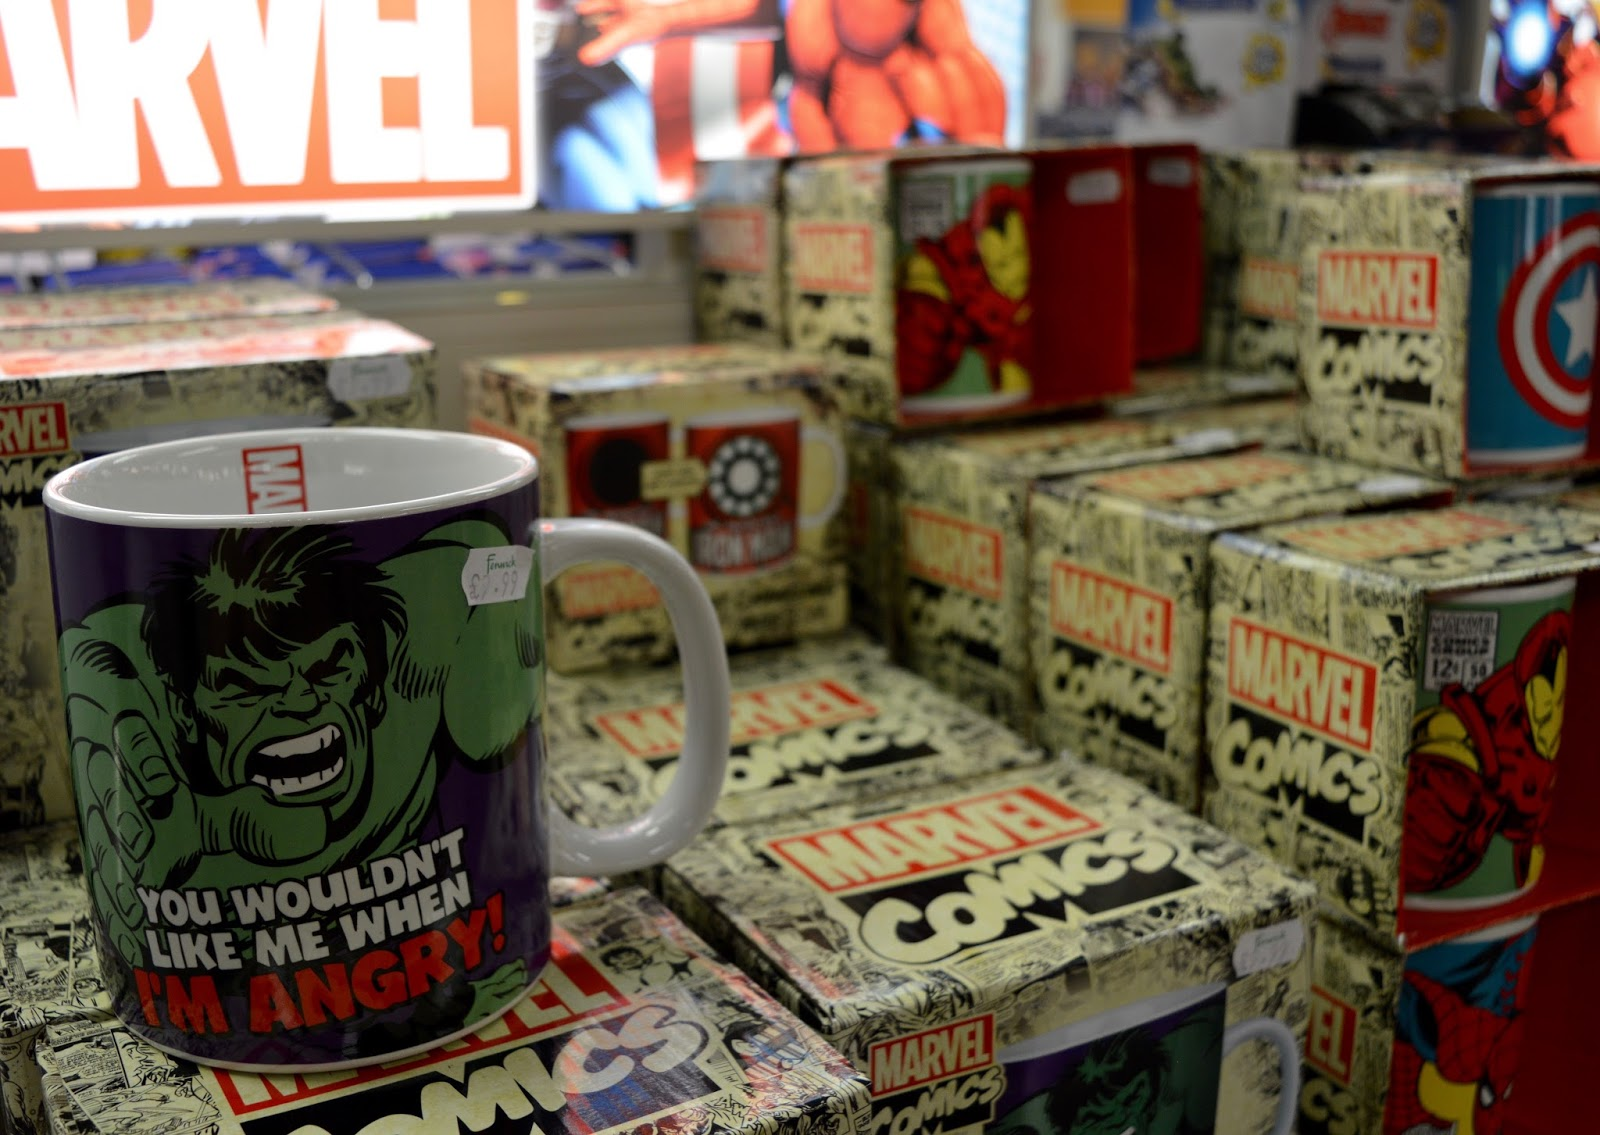 Fenwick's Window Newcastle 2016. Beatrix Potter / Peter Rabbit theme - Fenwick Toy Department third floor - Marvel hulk mug